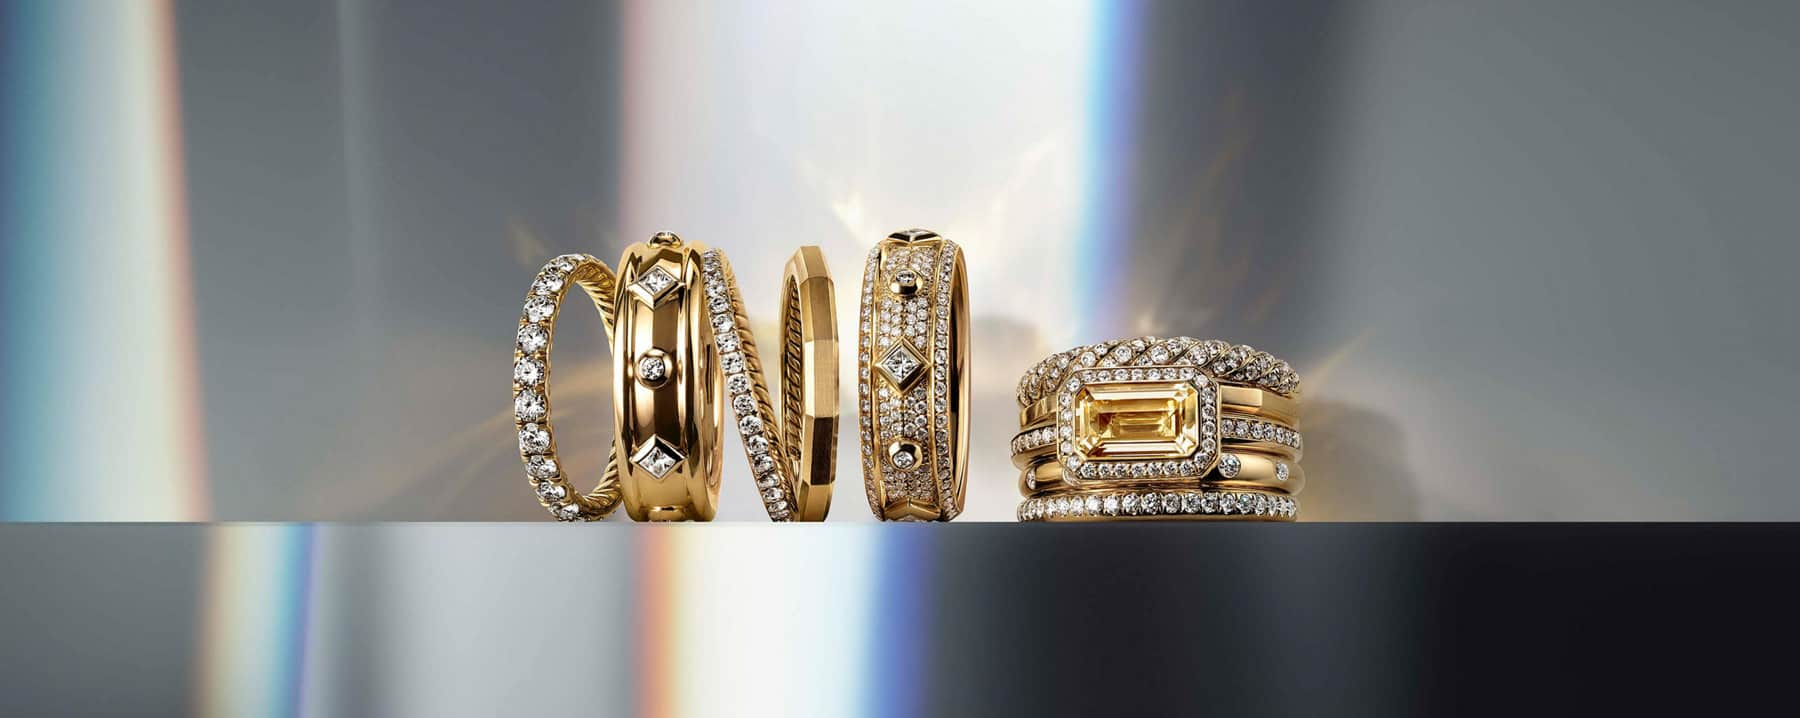 A color photo shows six David Yurman rings from the DY Eden, Modern Renaissance and Stax collections lined up in a horizontal row on a clean surface. The jewelry is crafted from 18K yellow gold with diamonds and with or without a Champagne citrine. In the background are reflections of rainbow-hued light.